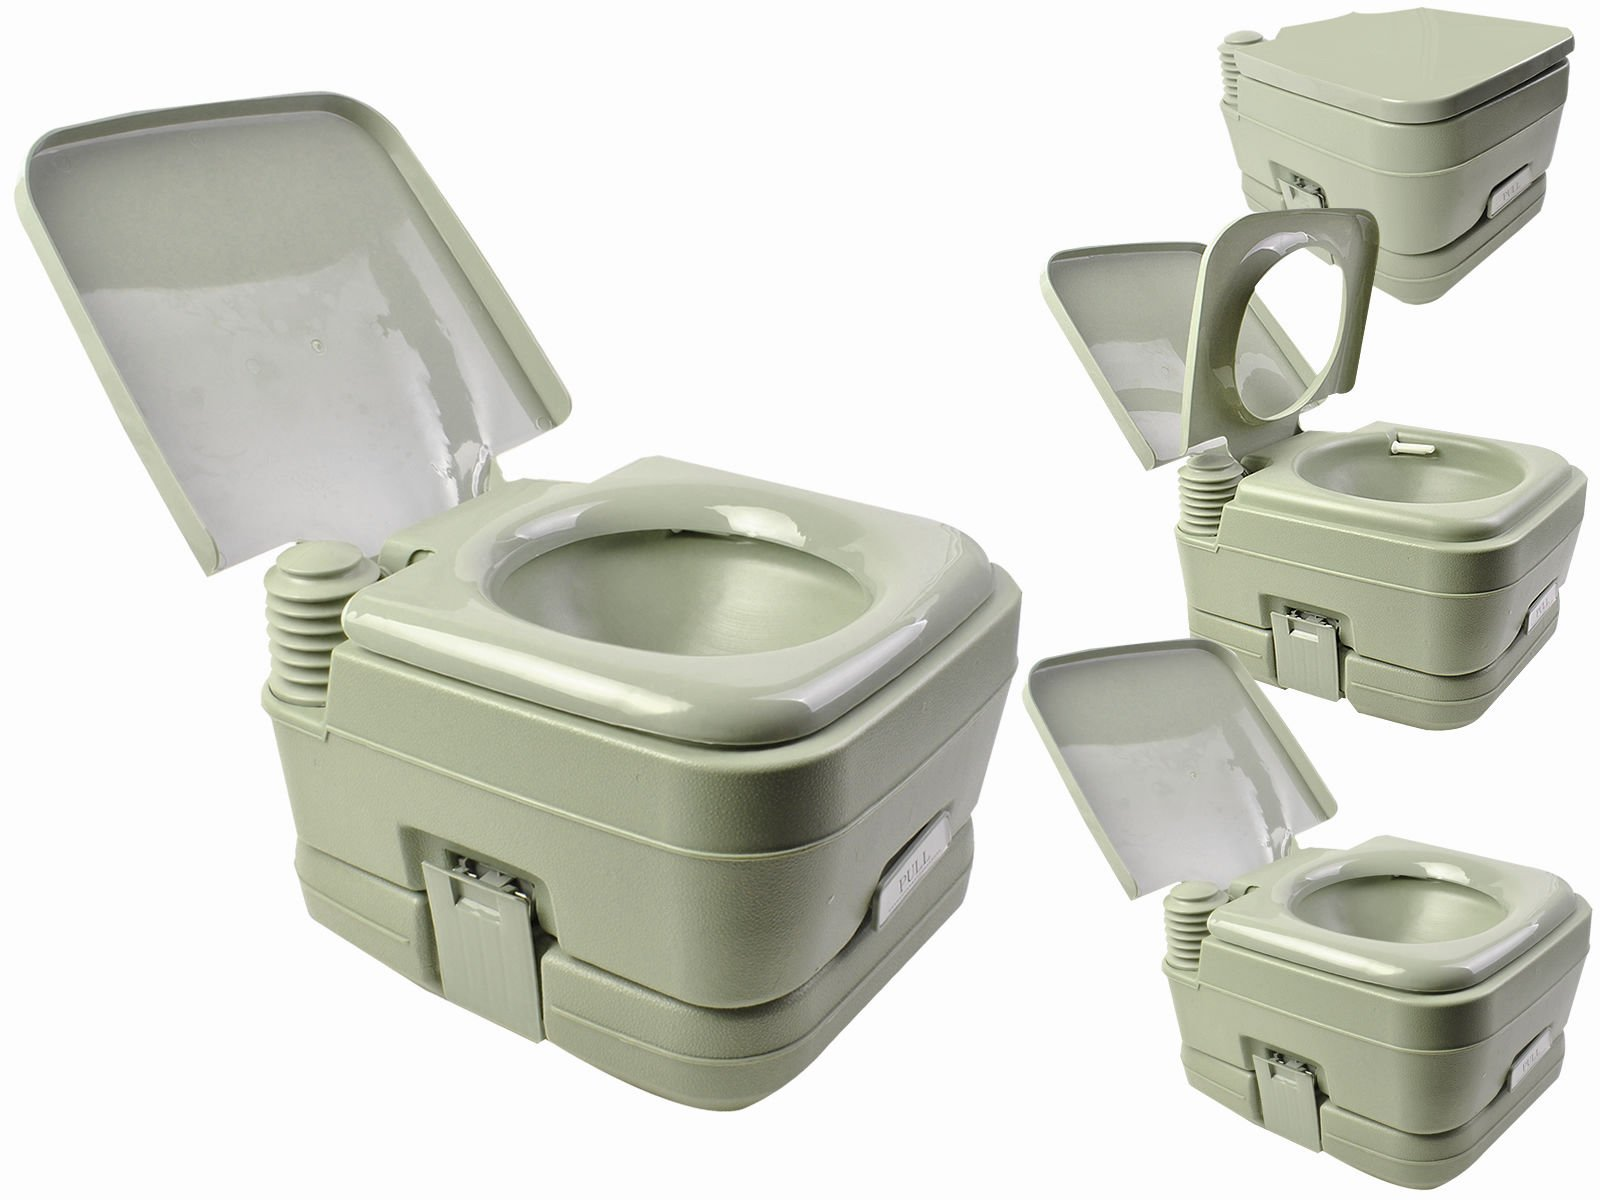 Portable Toilet Travel 2.8 Gallon 10L Camping Outdoor Indoor Potty Flush Green